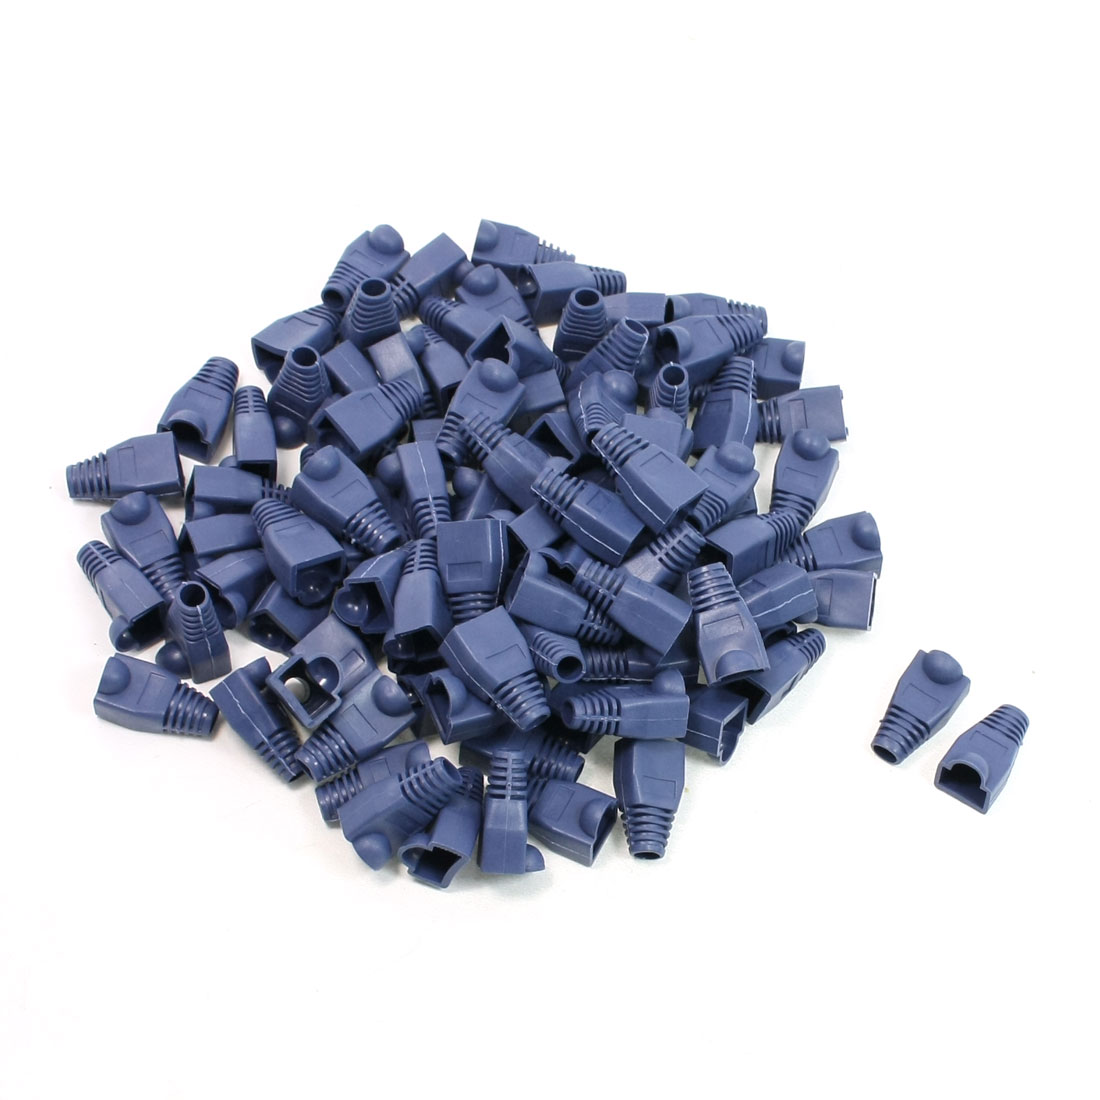 100 Pieces Computer Parts Blue Boots Cover Cap for RJ45 Connectors